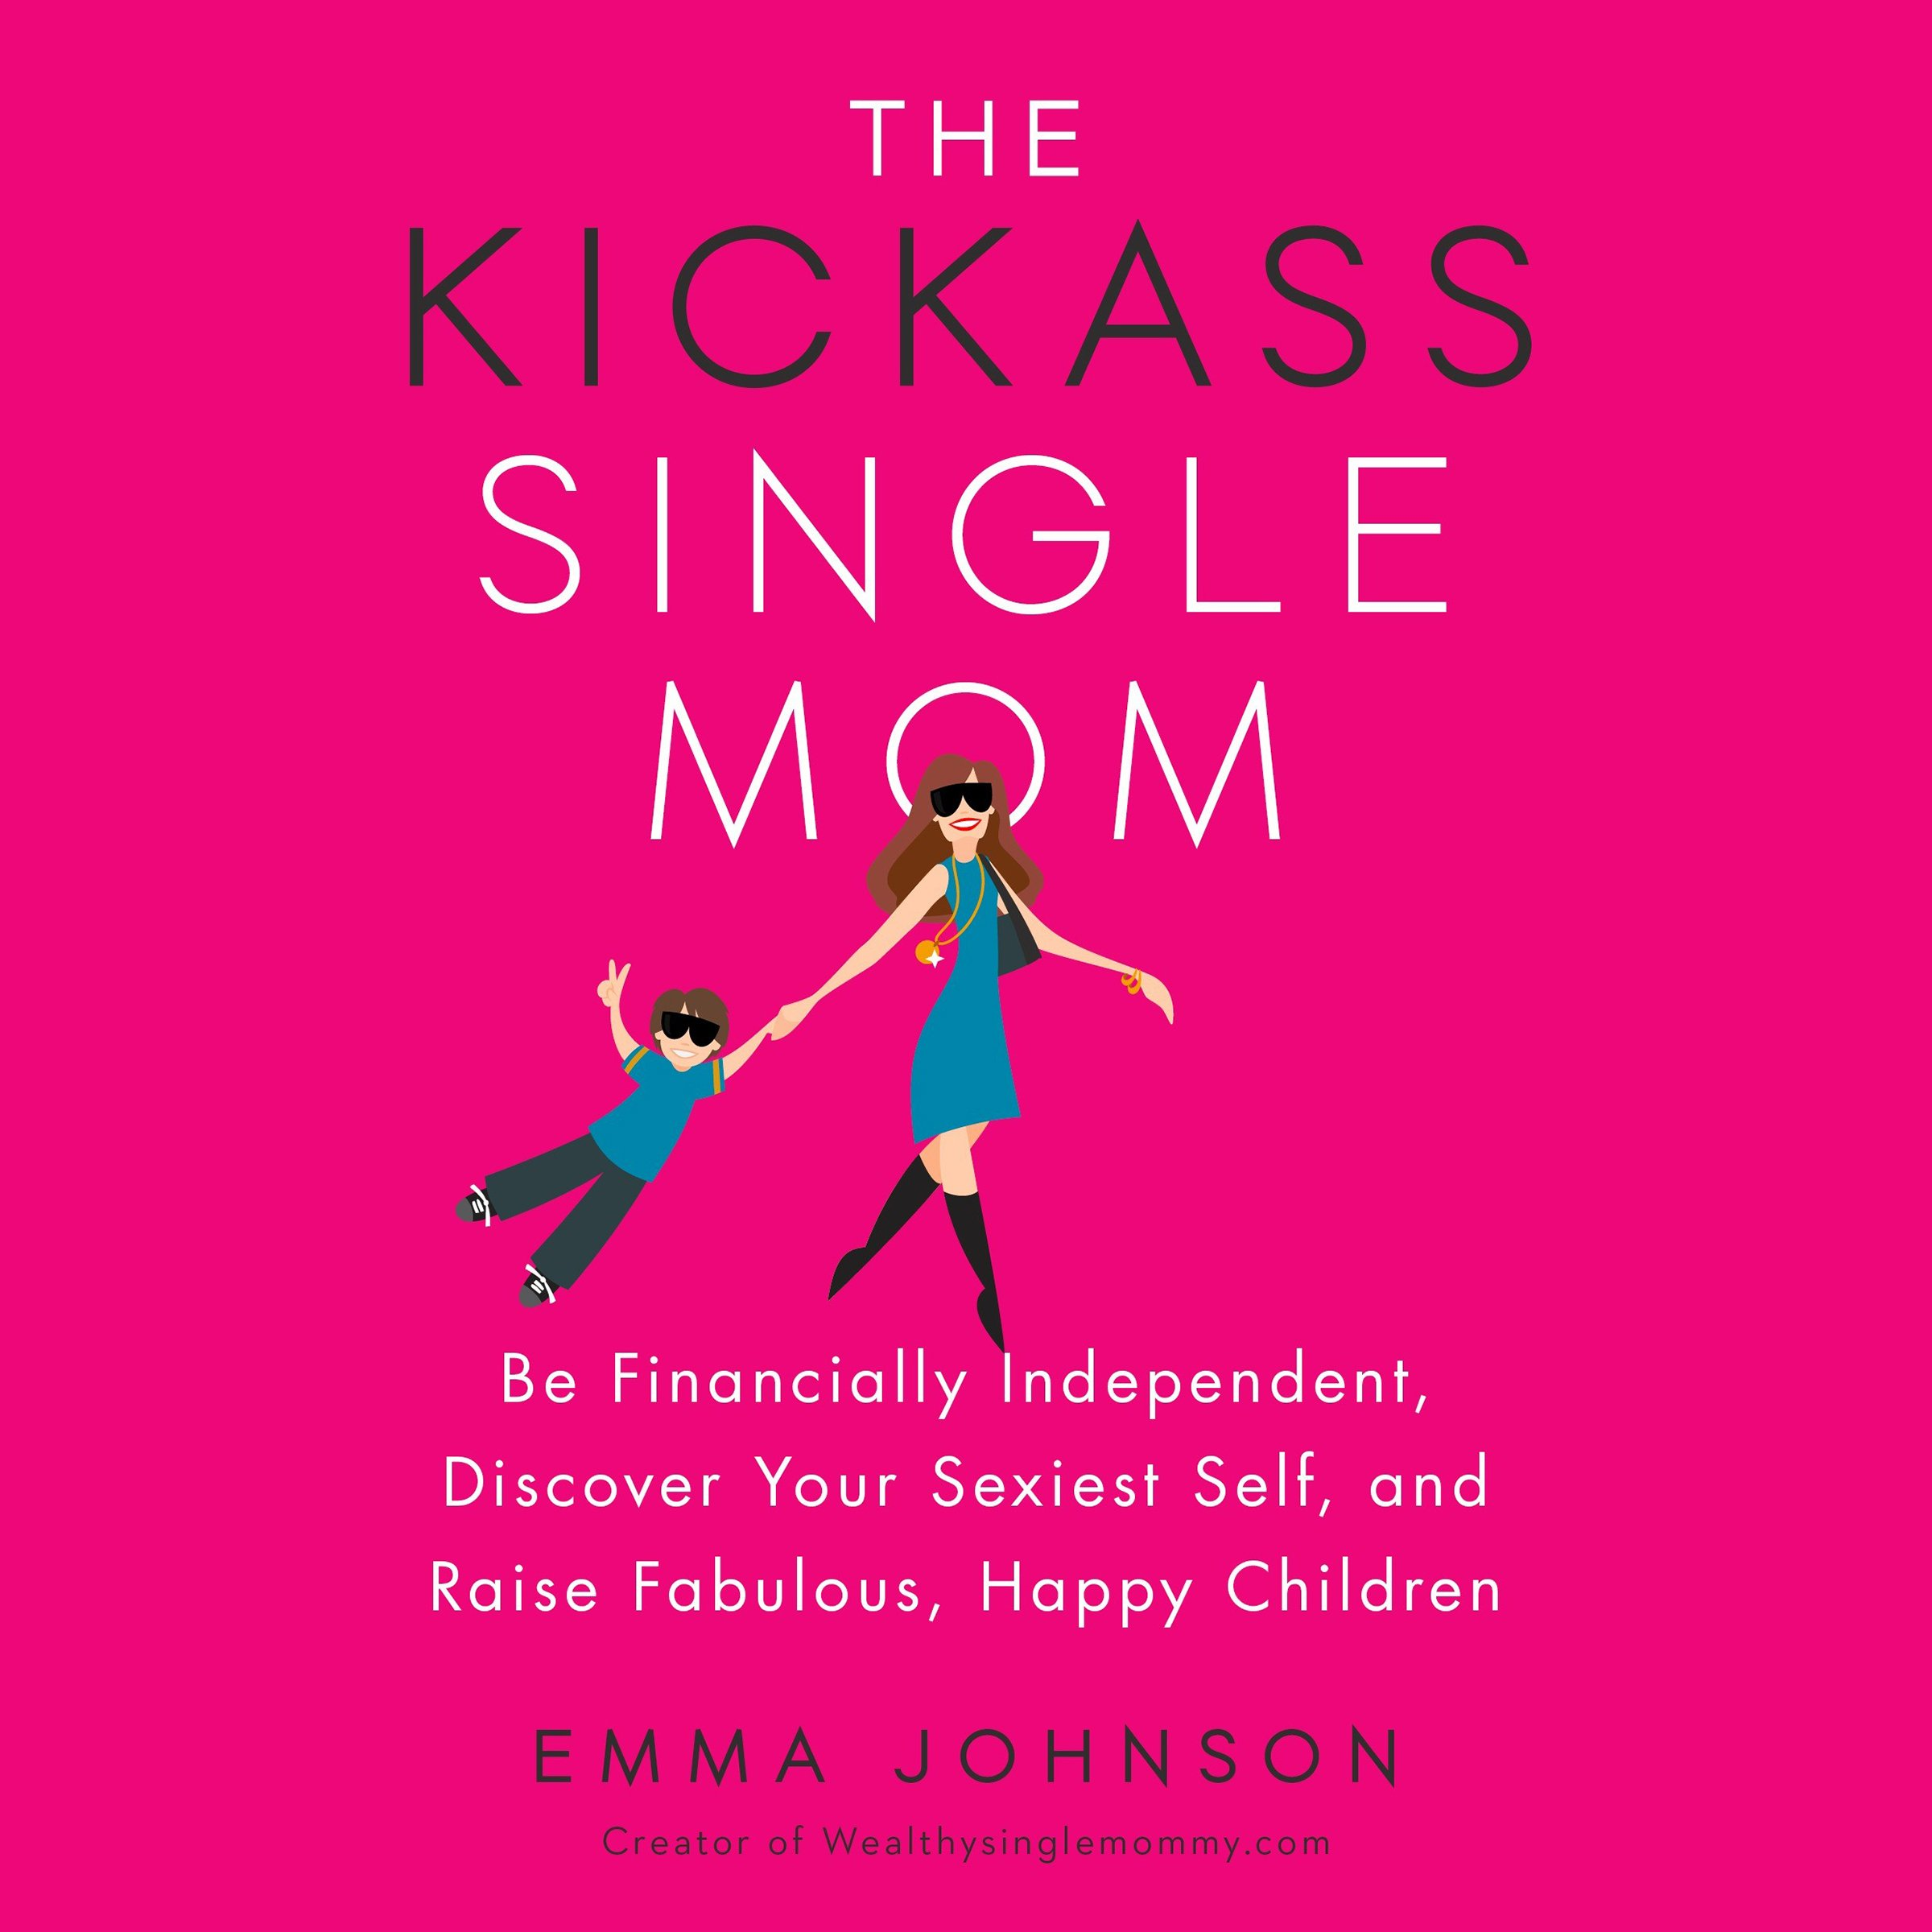 The Kickass Single Mom: Be Financially Independent, Discover Your Sexiest Self, and Raise Fabulous, Happy Children